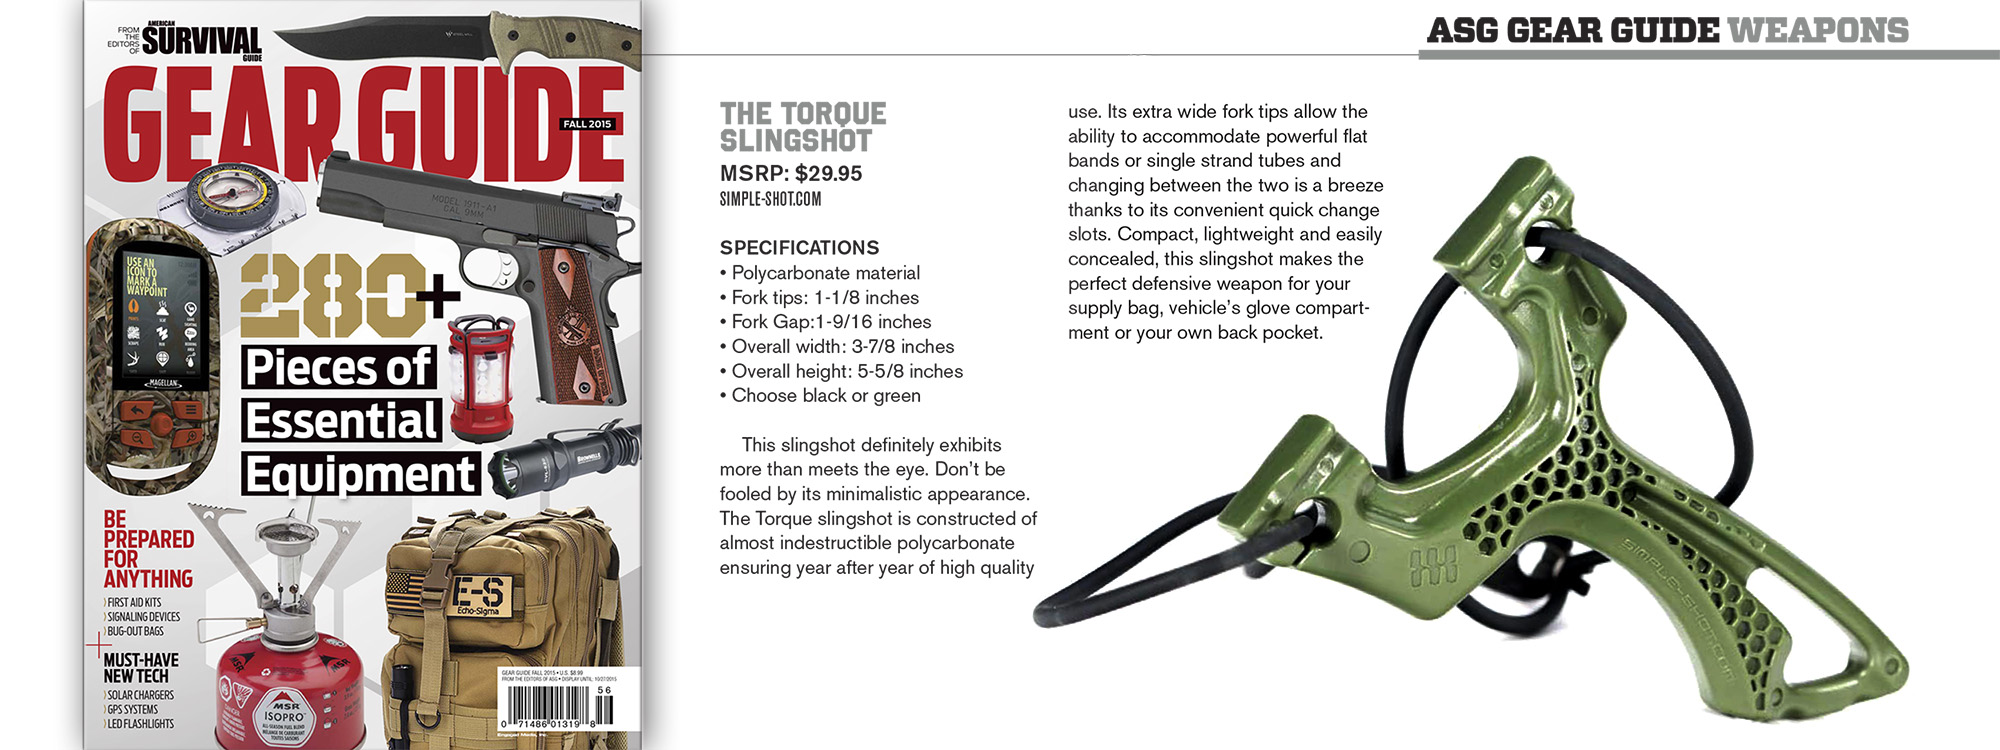 American SUrvival Guide - SimpleShot - The Torque